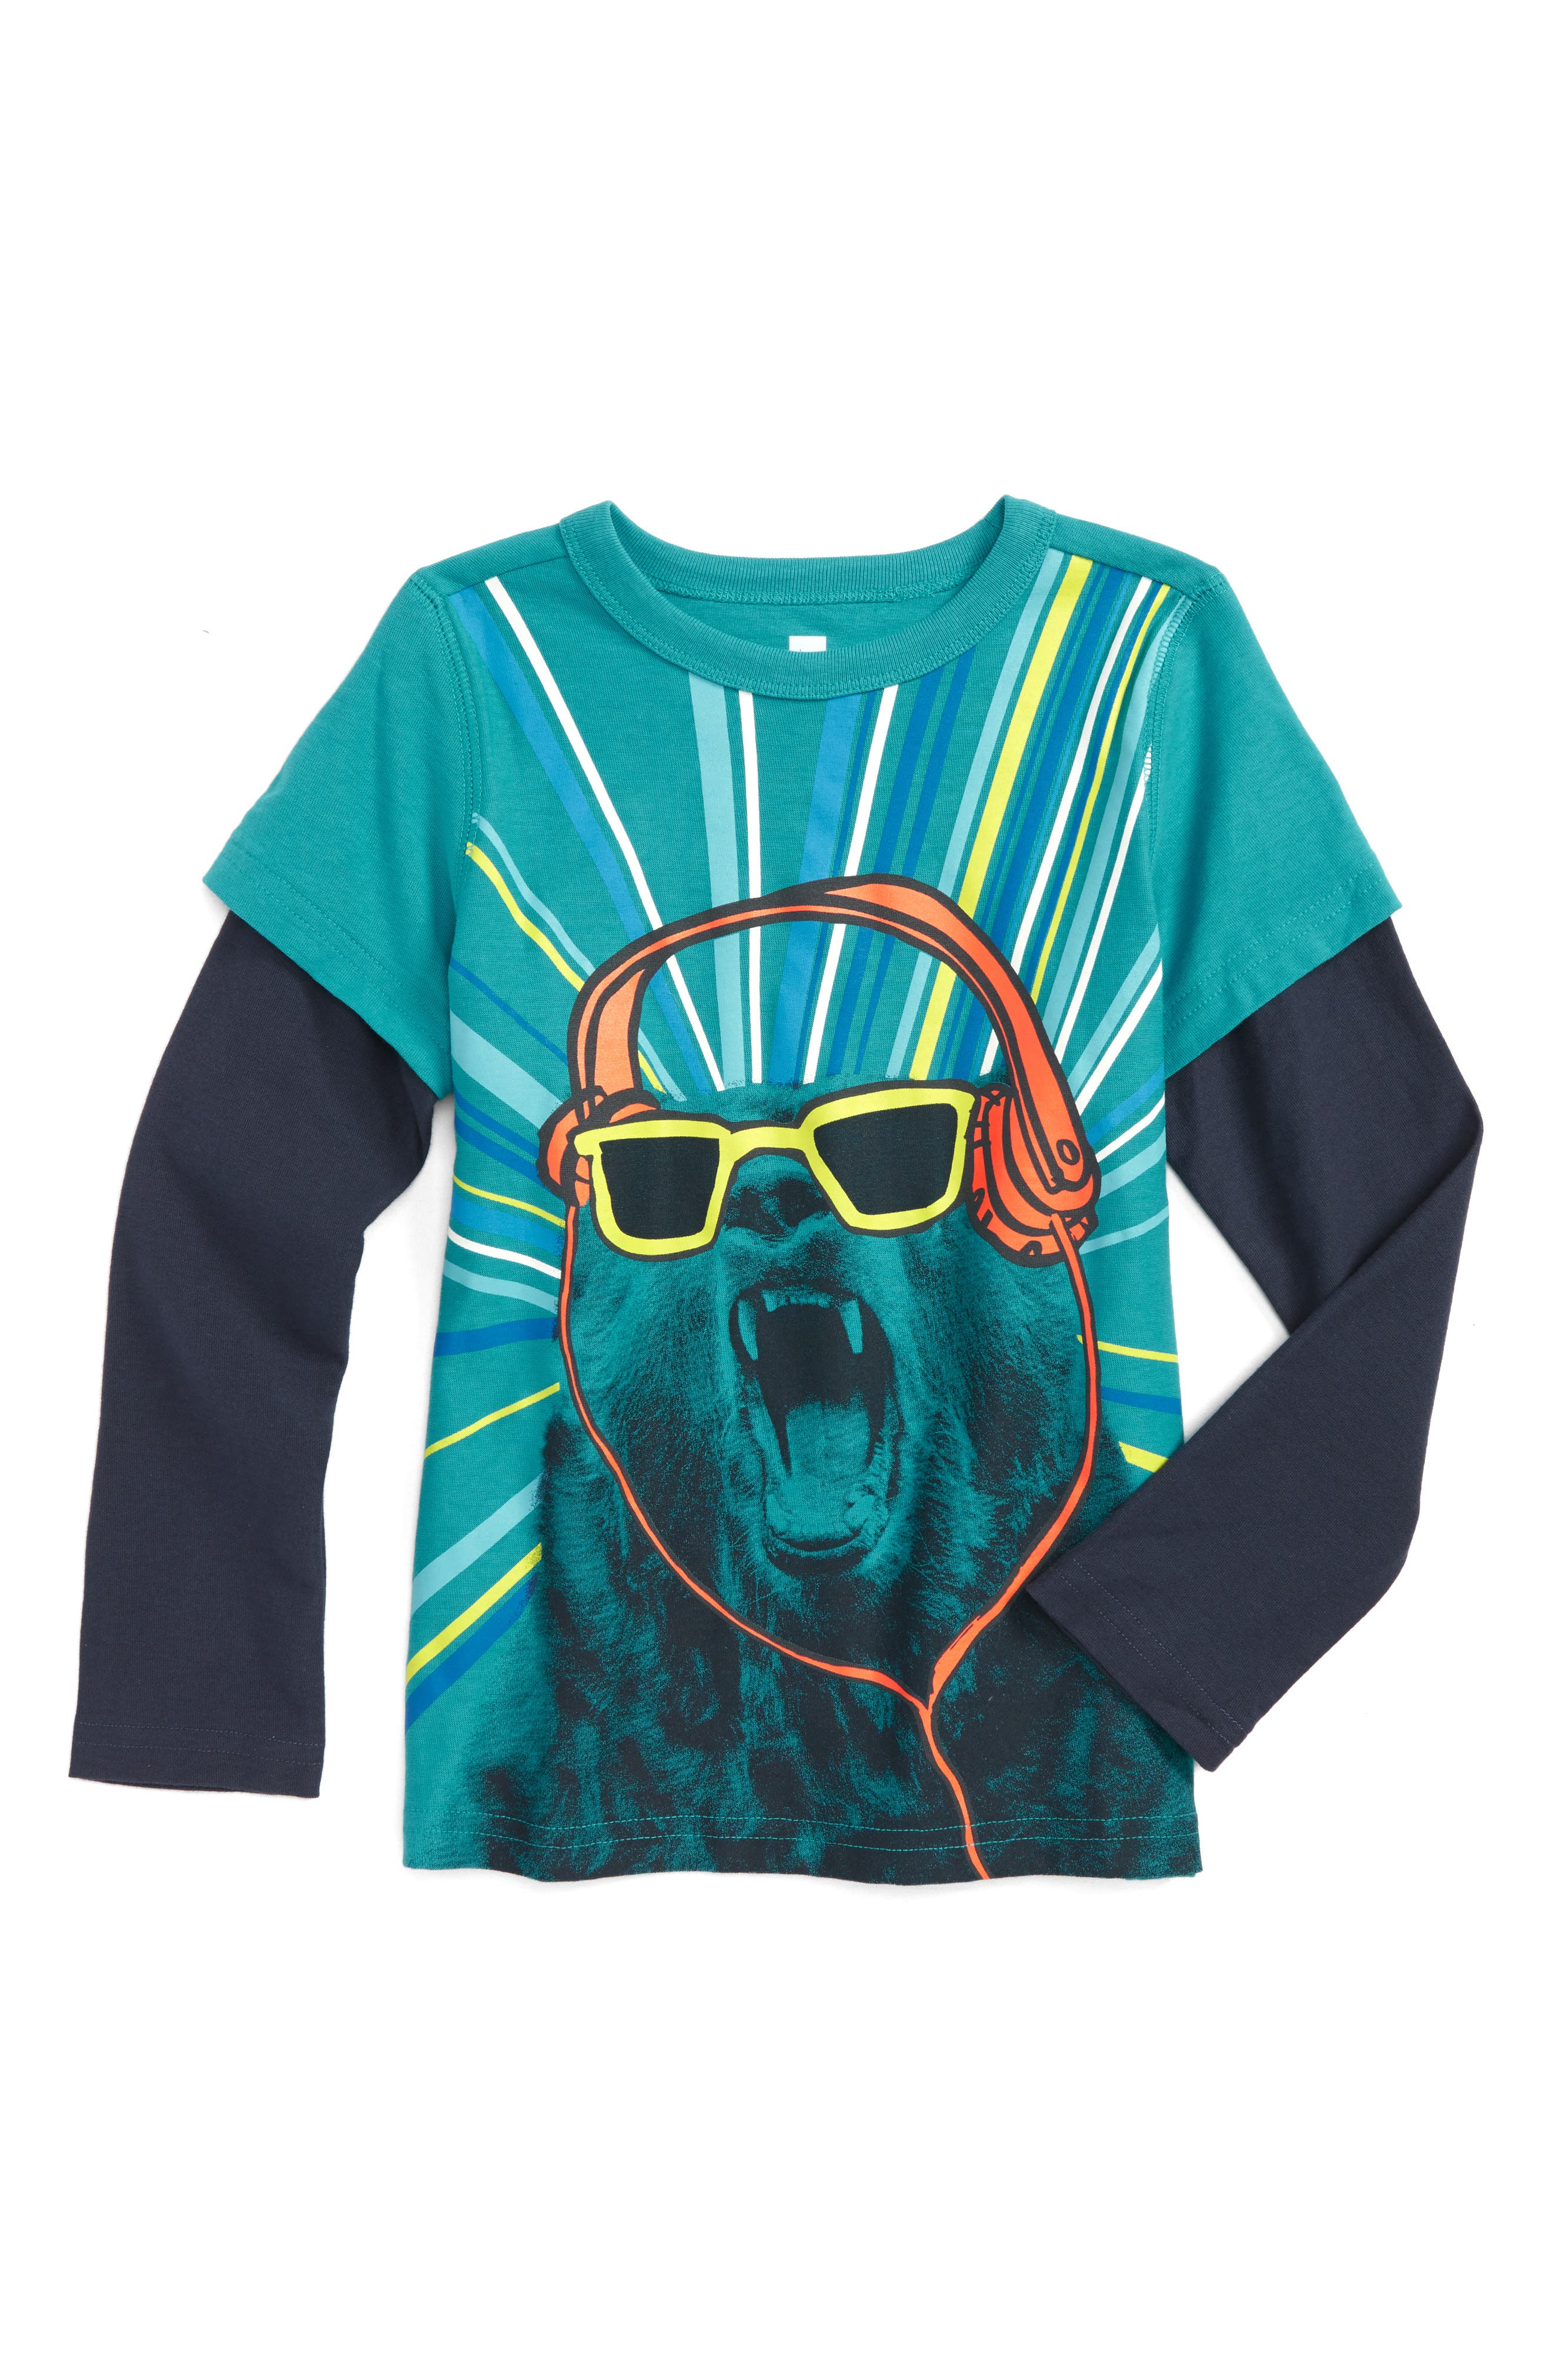 Bear With Me Graphic T-Shirt,                         Main,                         color, Pool